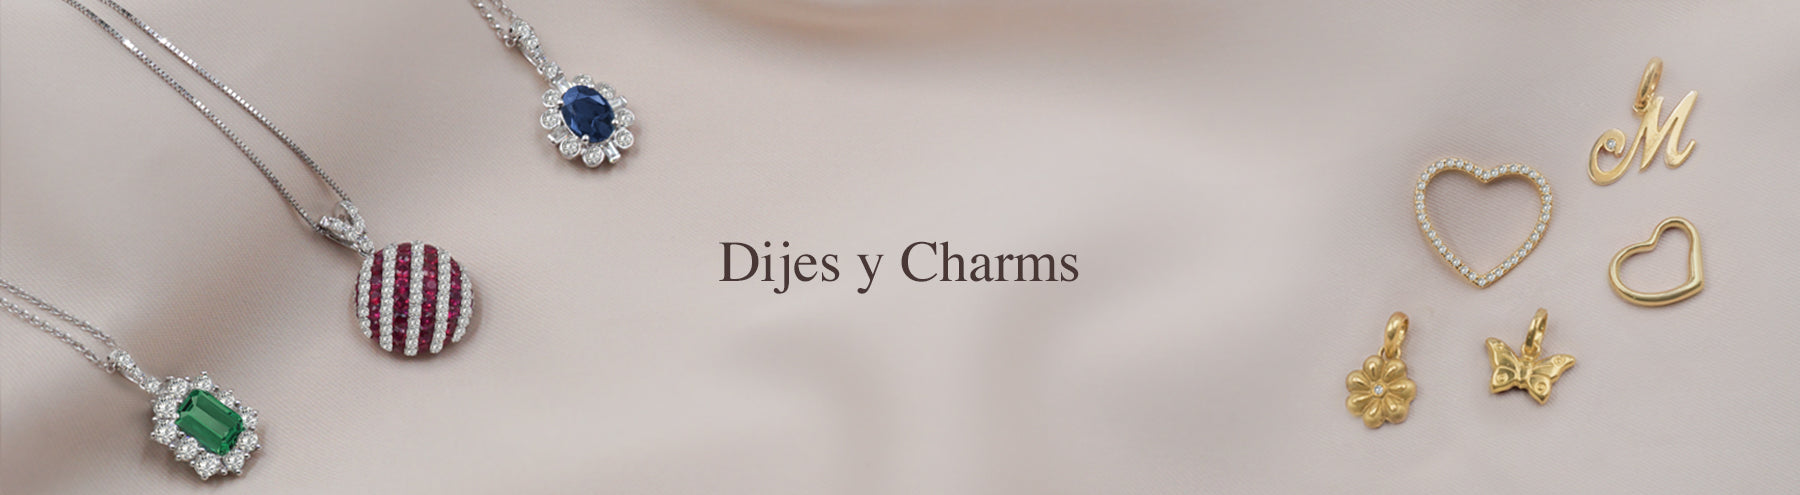 Dijes y Charms